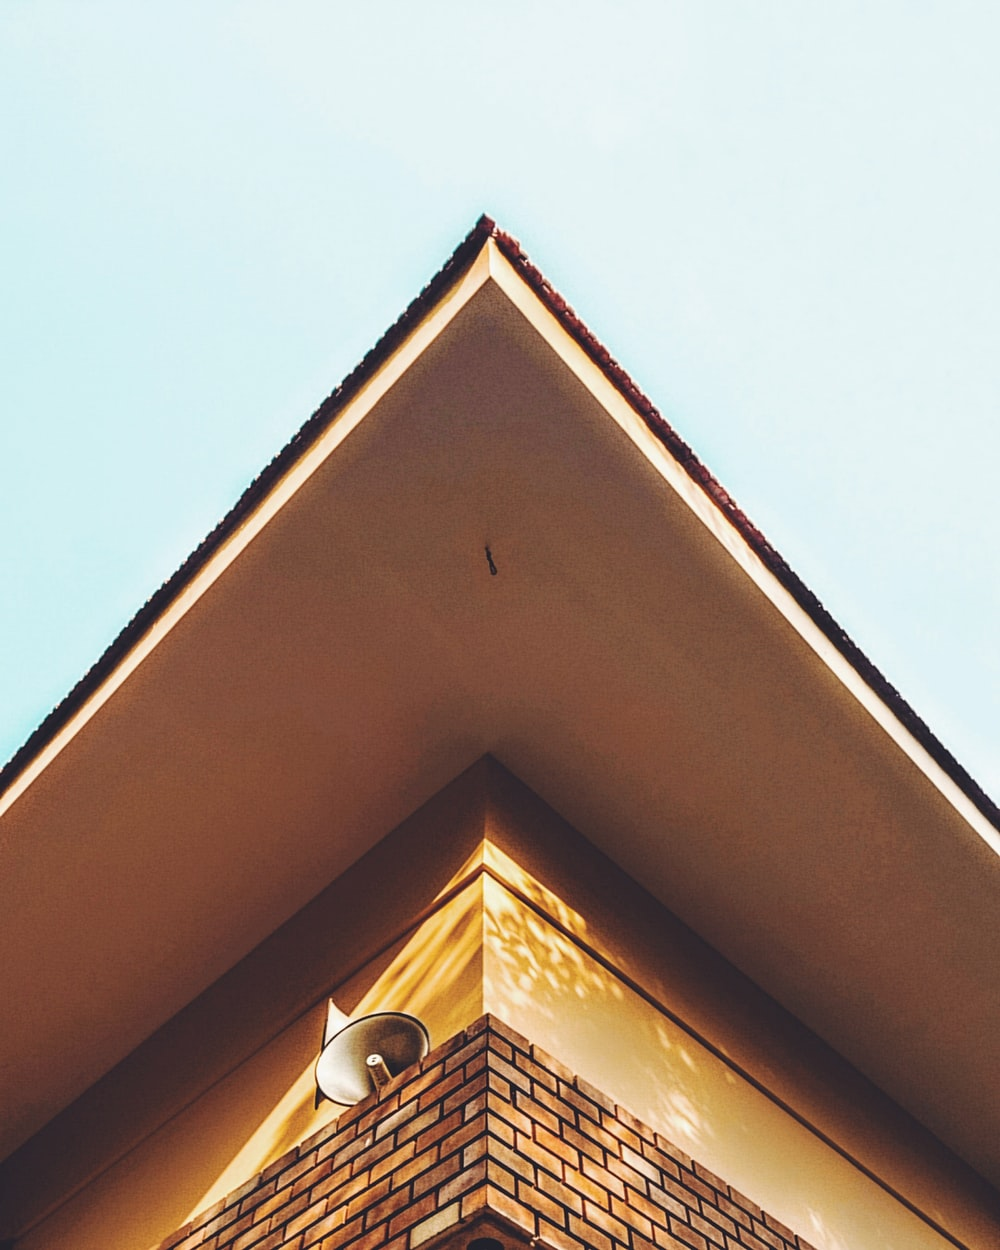 worm's eye view photography of house during daytime